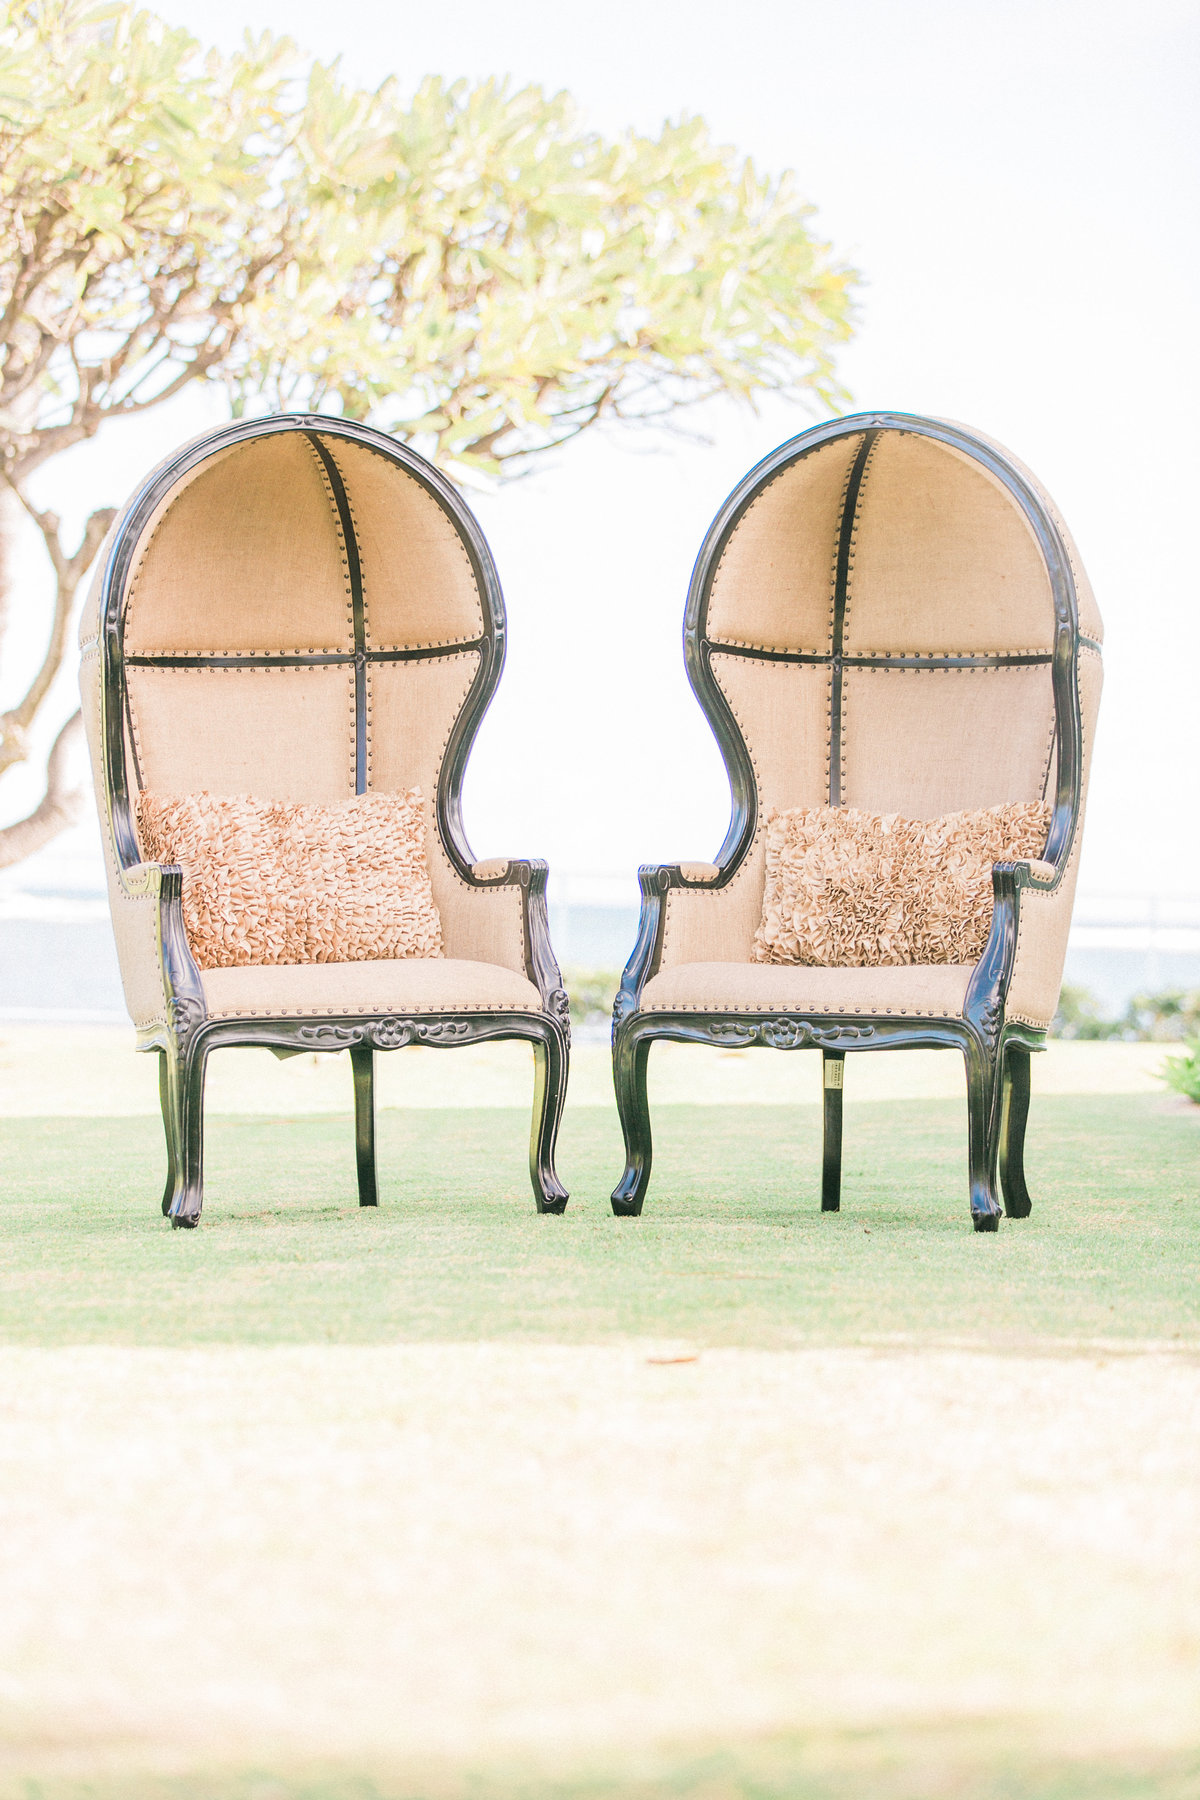 Dome Chairs Curate Decor and Design